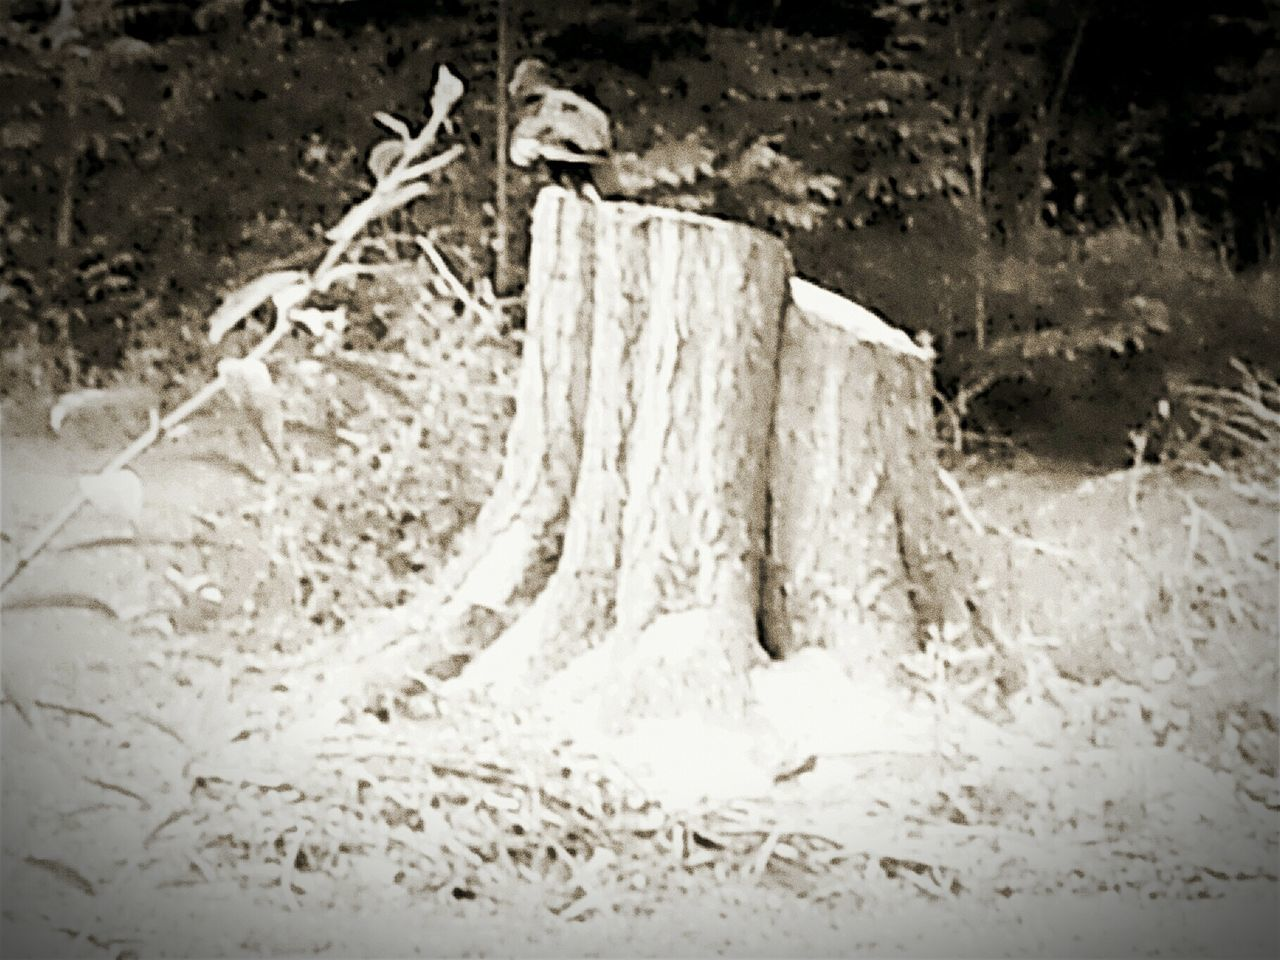 Buzzard  Broken Wing Tree Stump His New Home Bnw_friday_eyeemchallenge Black And White